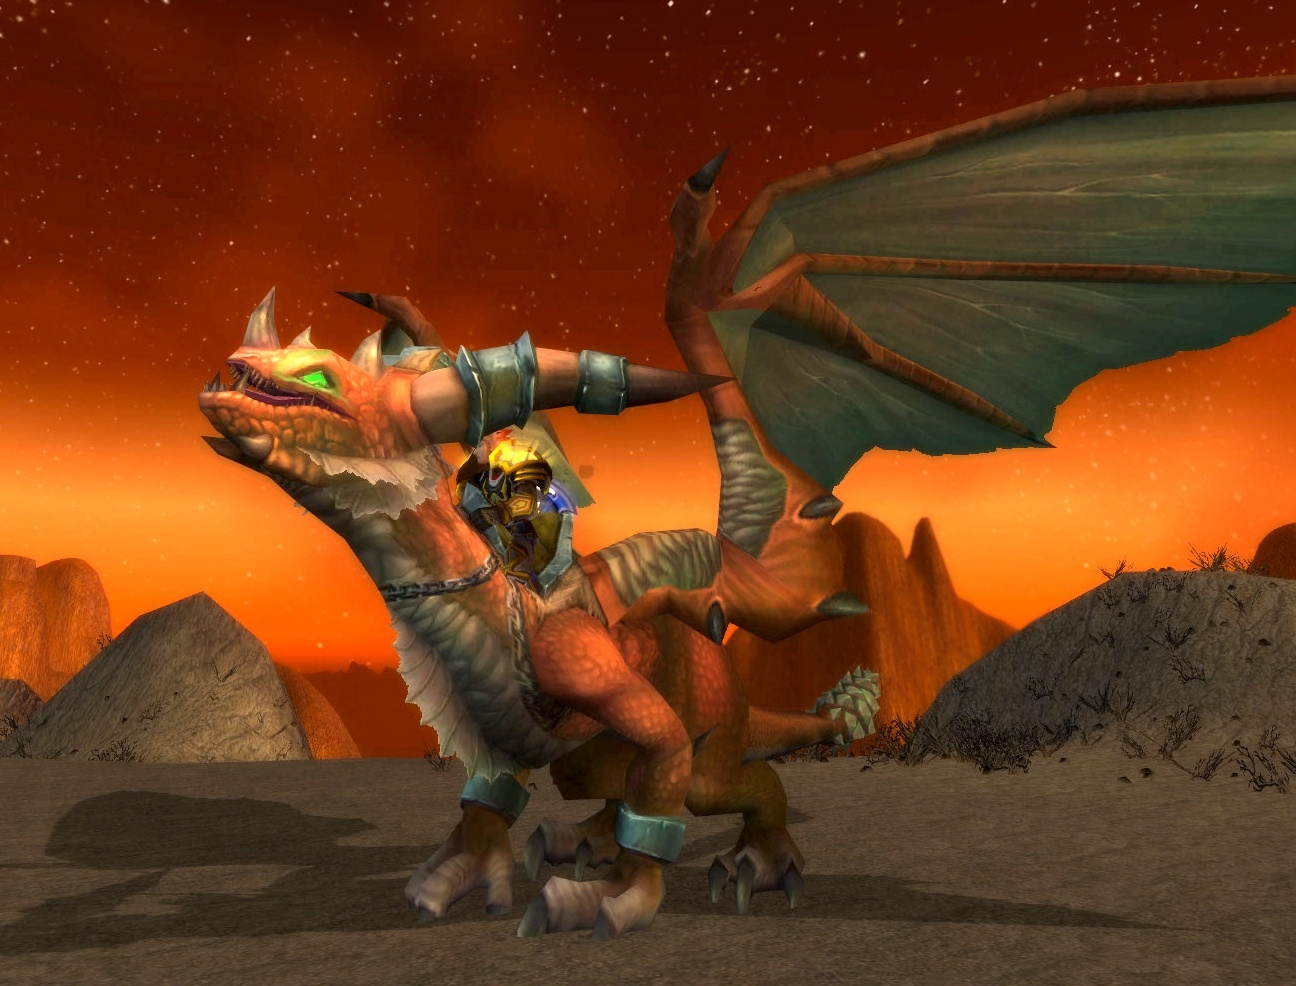 100 Images of Blazing Dragon Wow